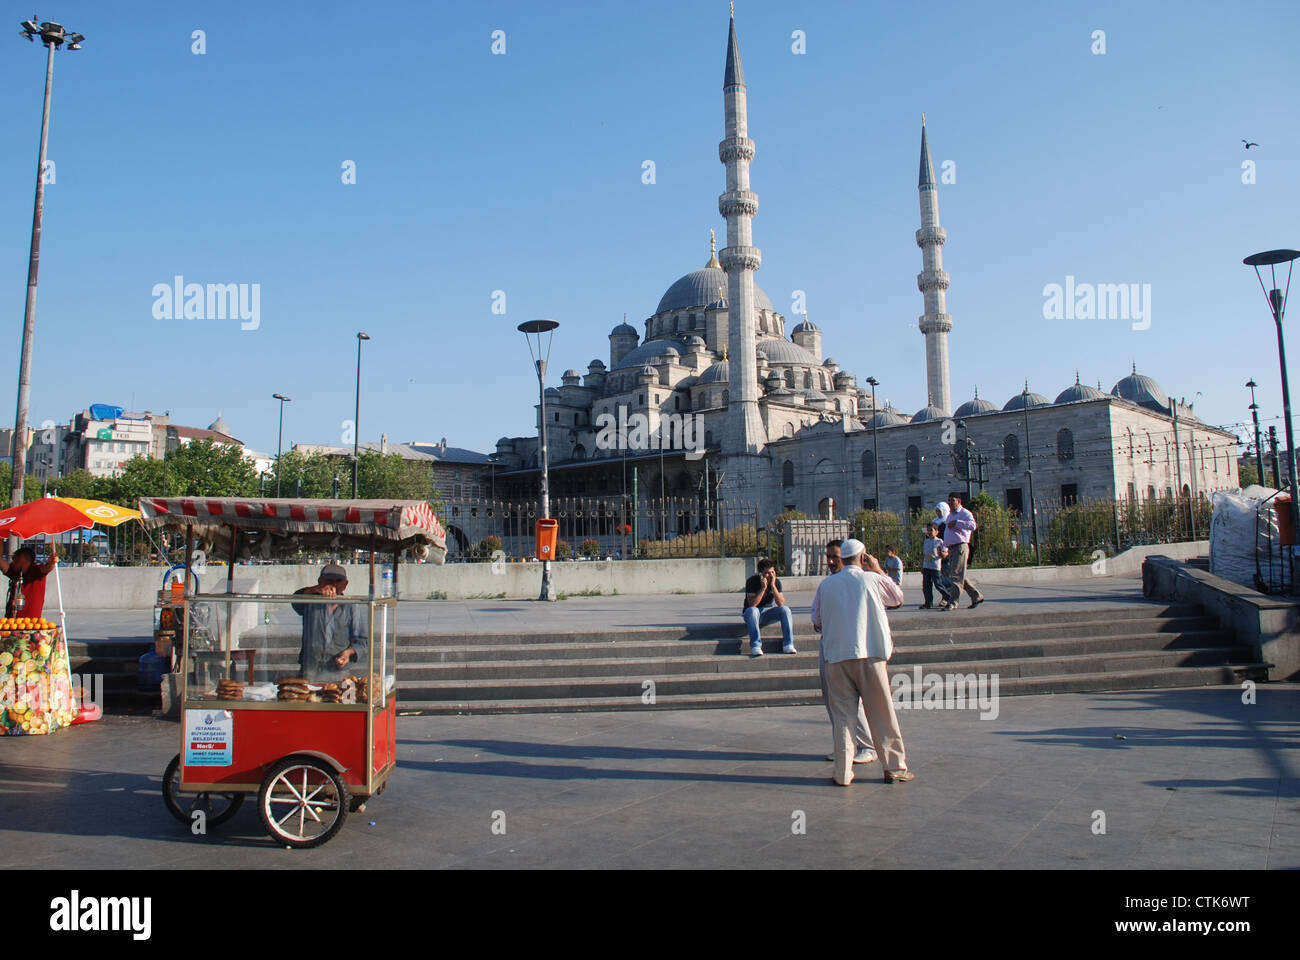 A pastry-seller in front of a mosque in Istanbul. Picture by: Adam Alexander/Alamy - Stock Image